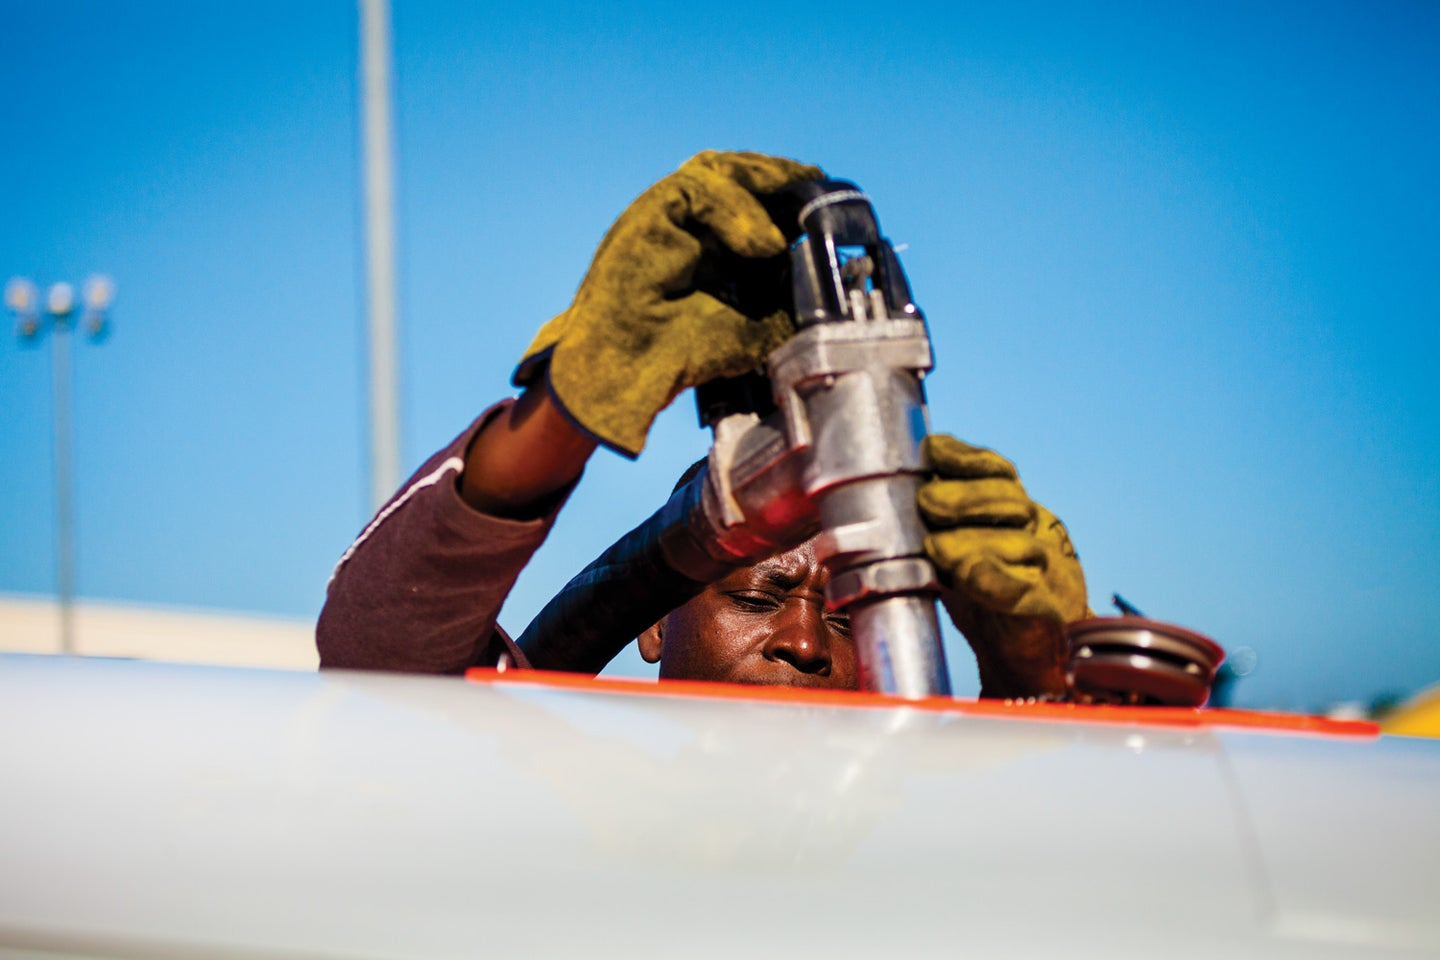 man pumping fuel into airplane